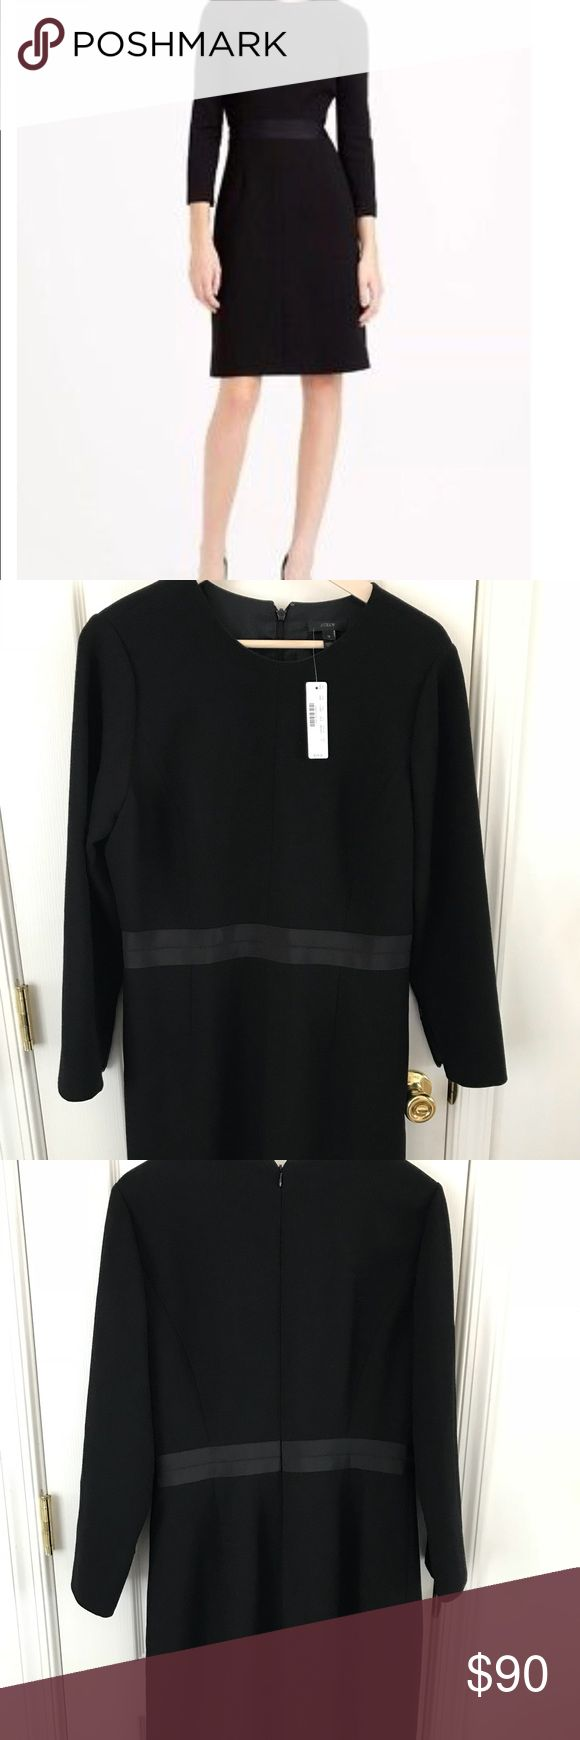 New J CREW $228 Black Wool Crepe Dress Sz 12 NWT J.Crew Double Faced Wool Crepe Dress (black) Size 12 Item C1063. With bracelet-length, zip sleeves and a defined grosgrain waistband. Fitted silhouette, bracelet sleeves. Invisible back zipper. Dry clean only. J.Crew Factory Dresses